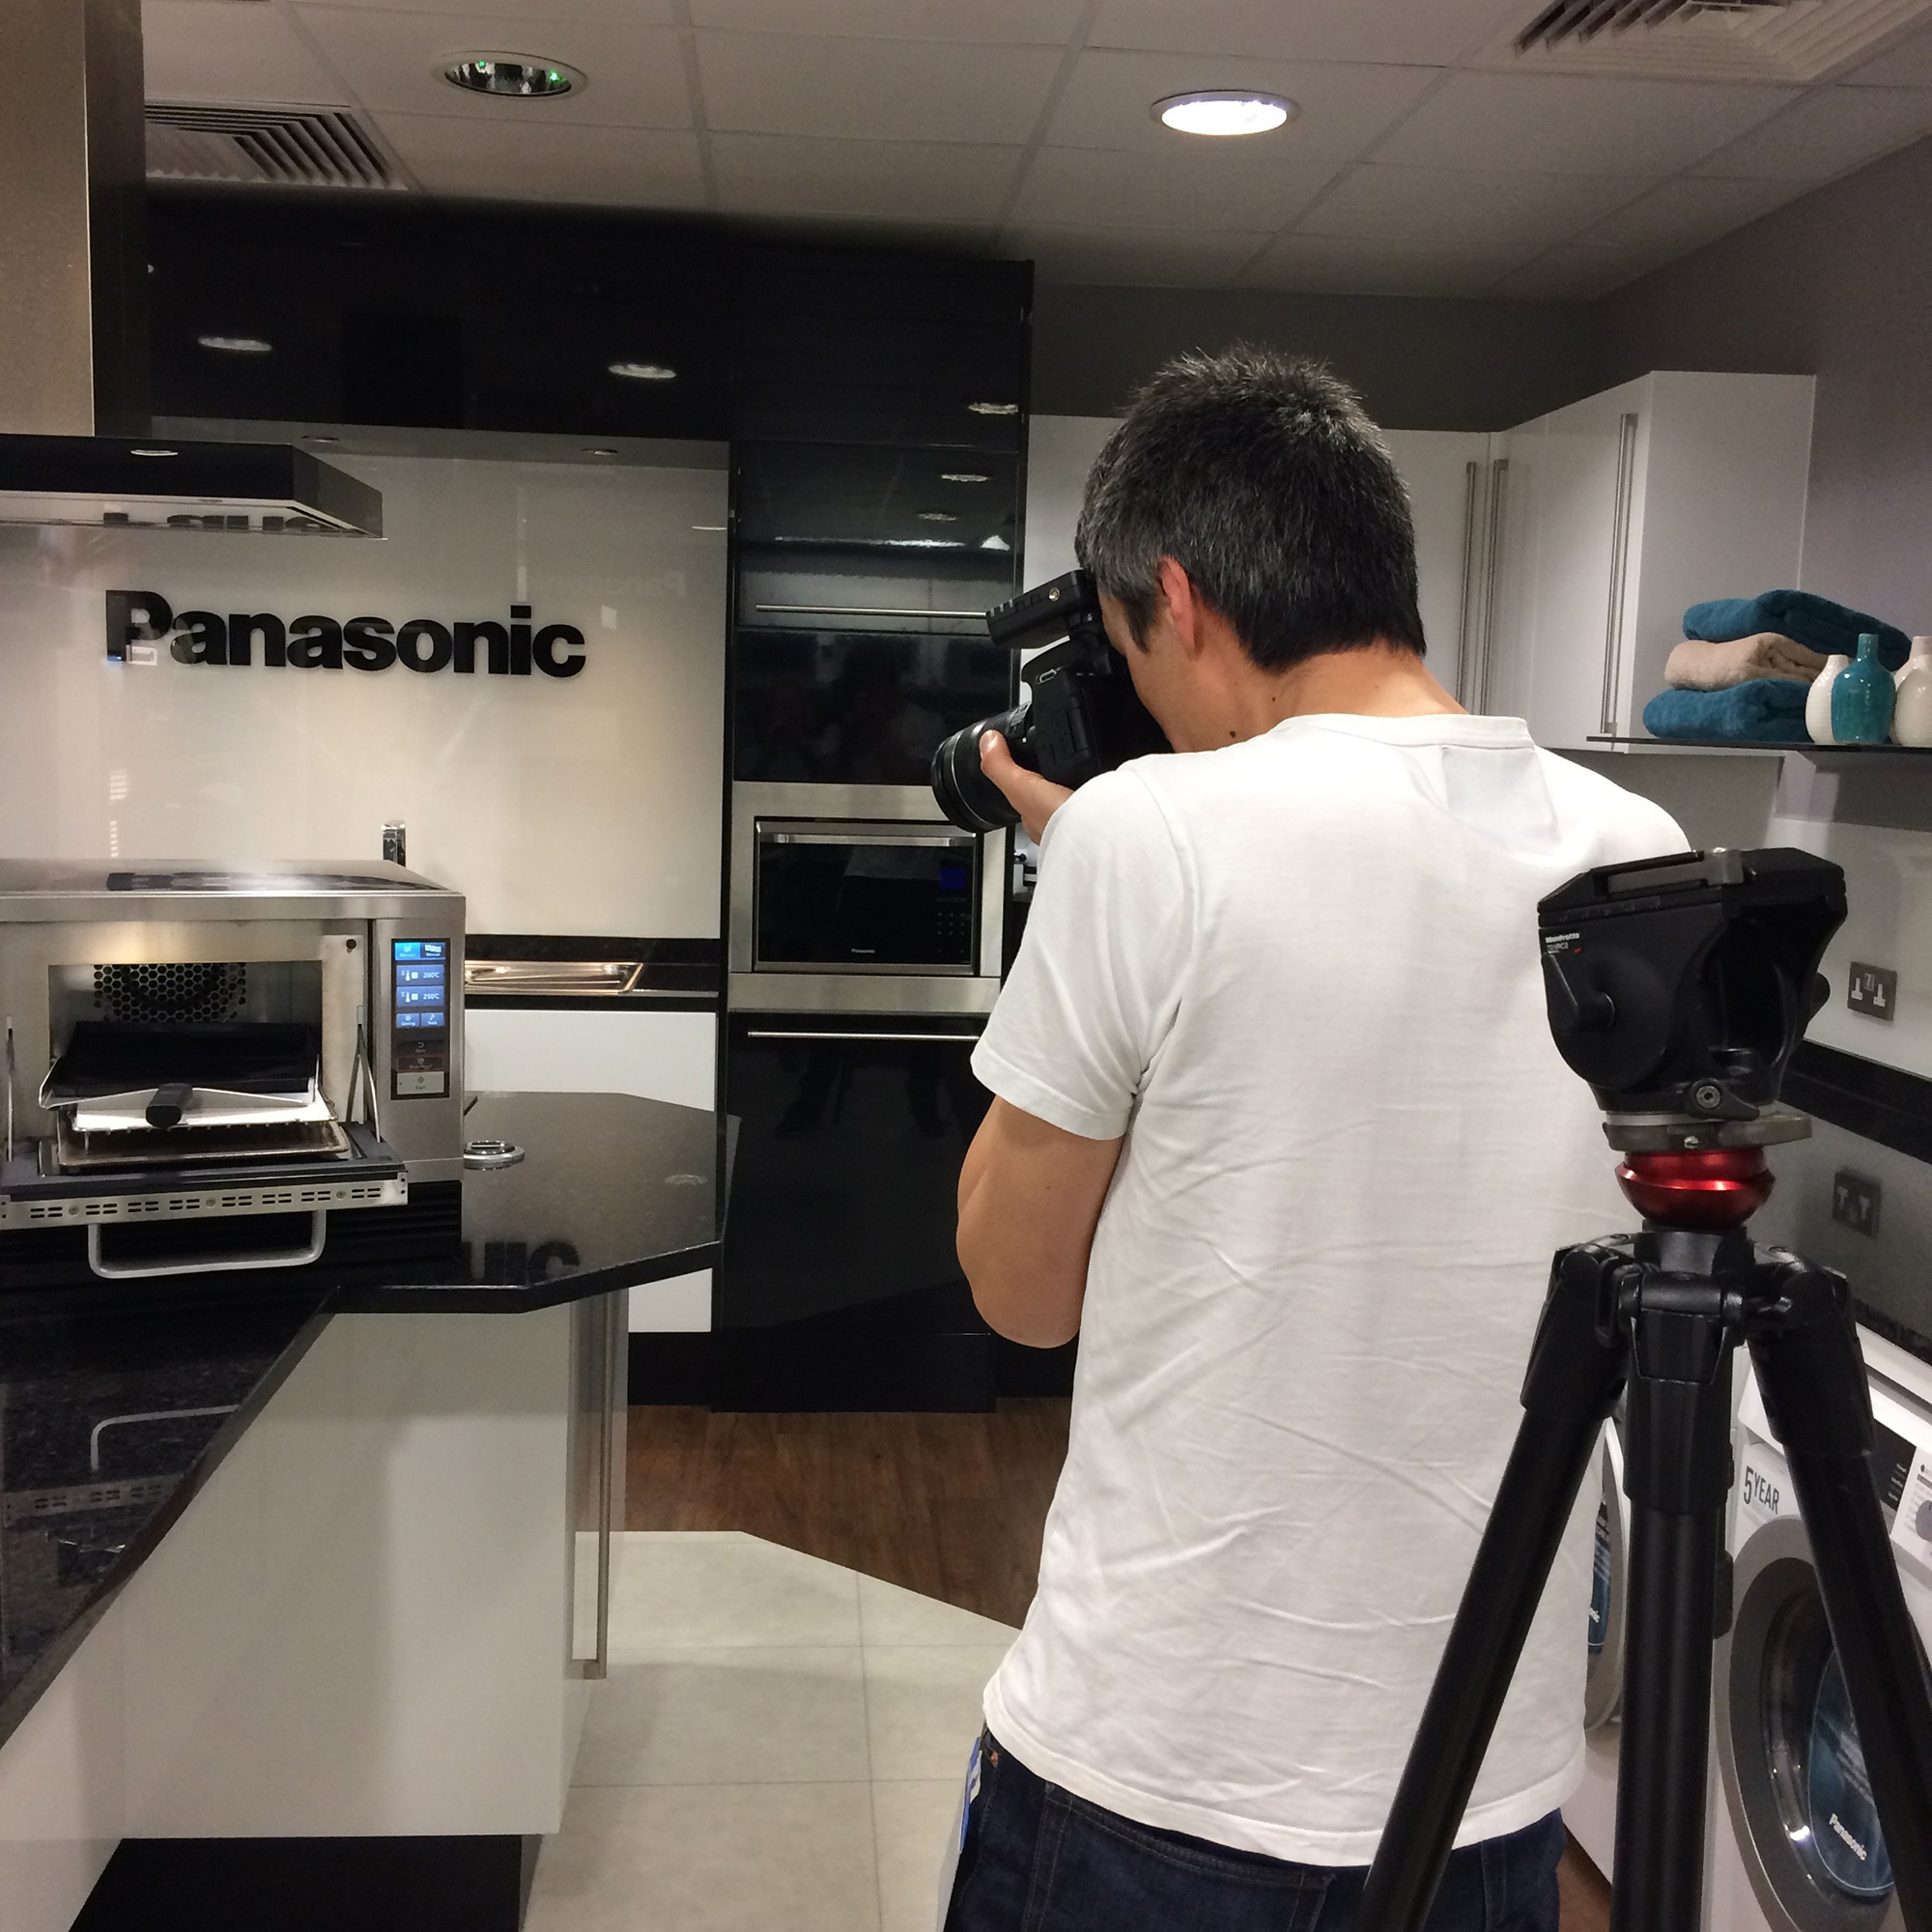 Panasonic_kitchen.jpg